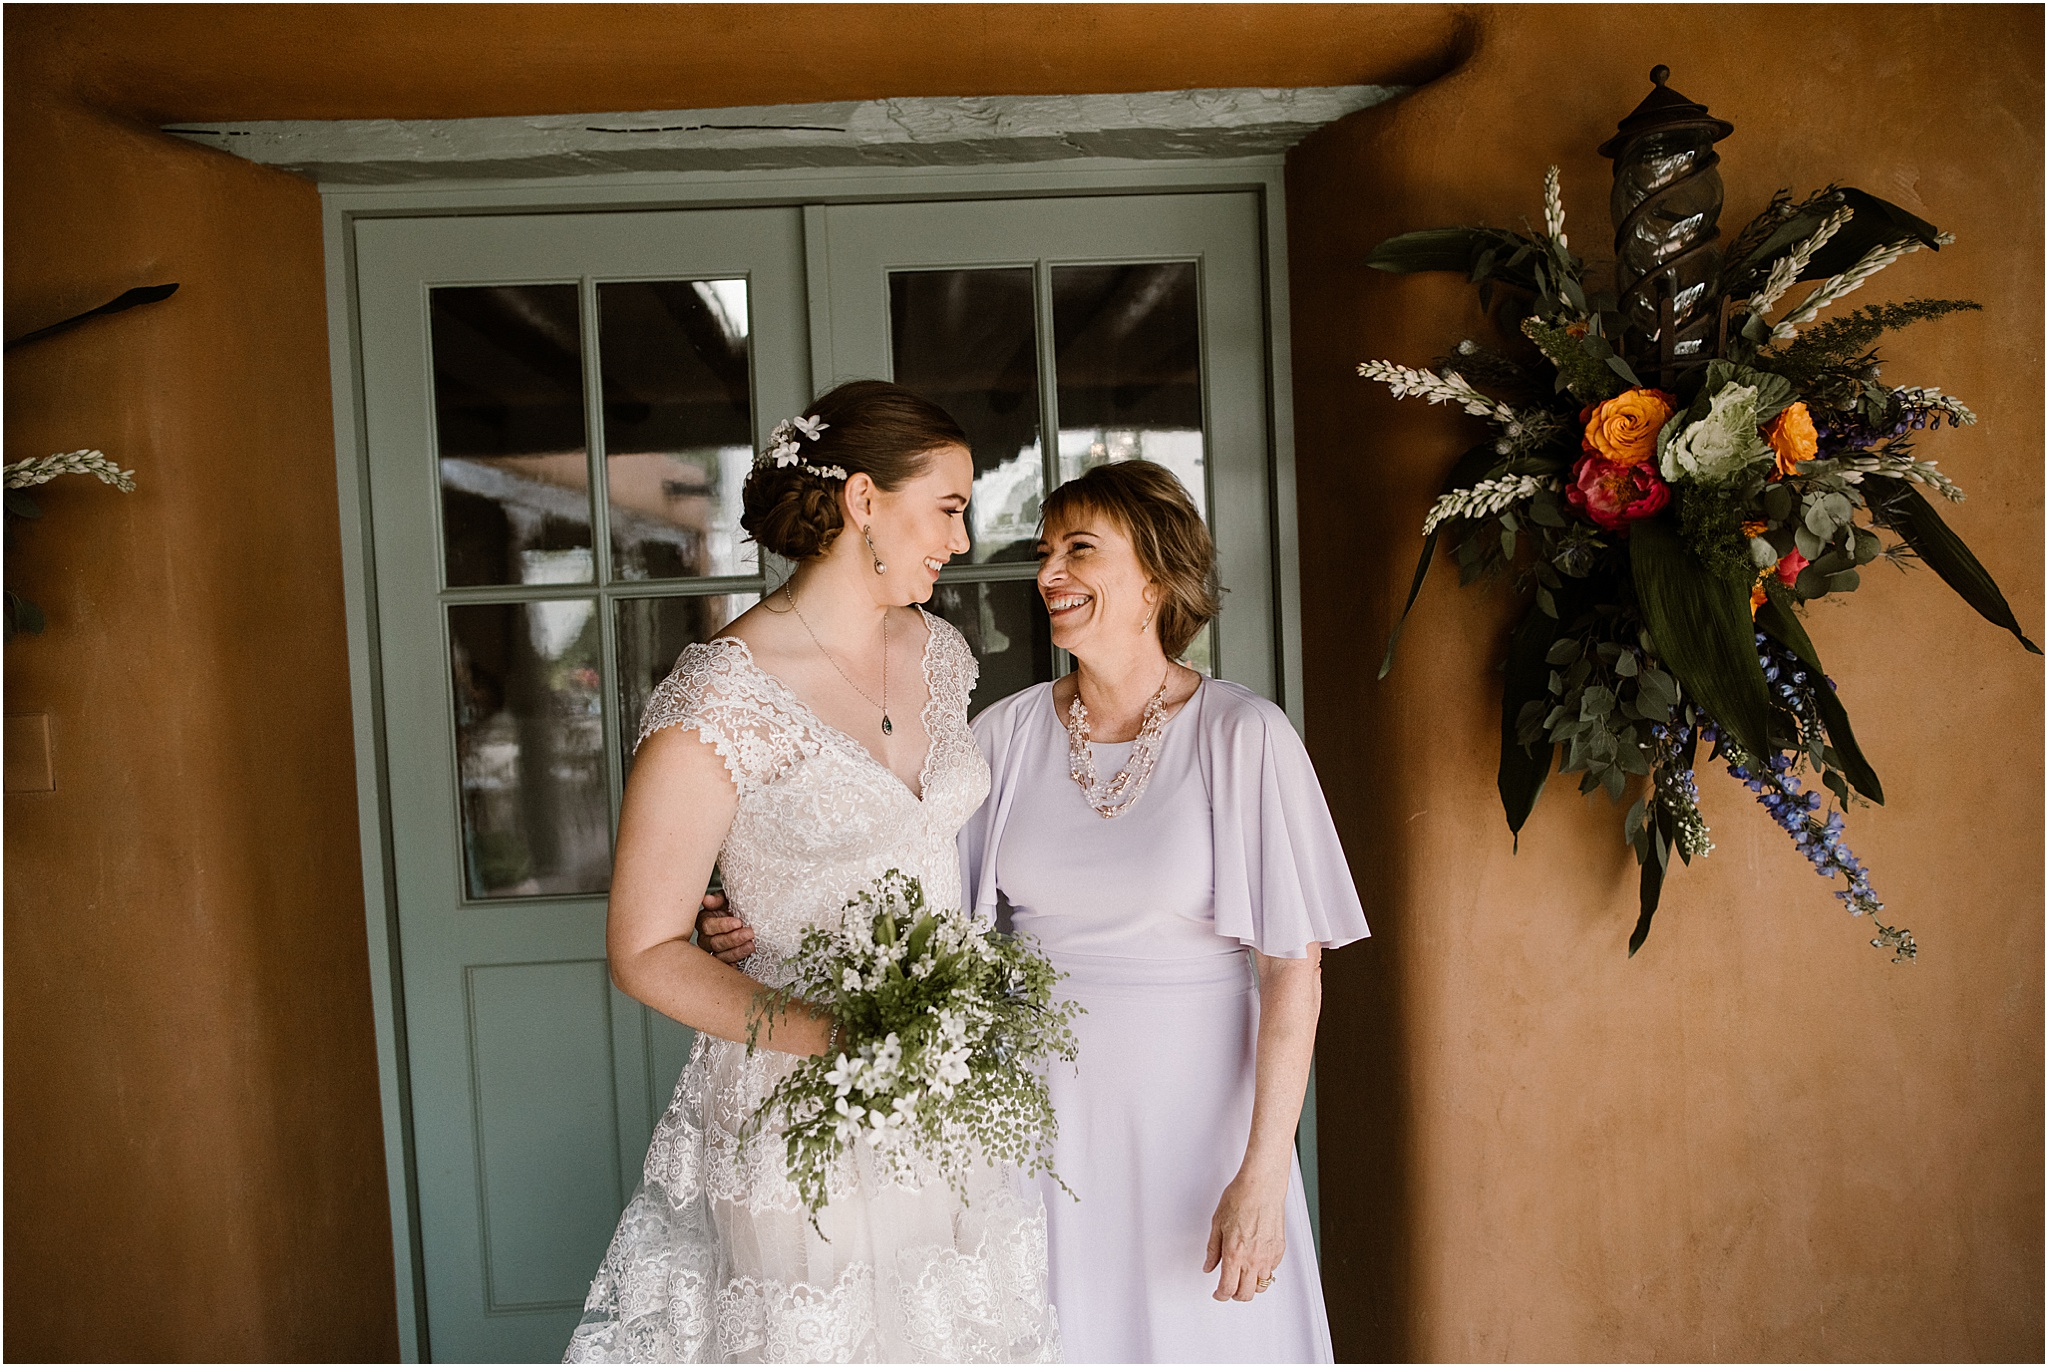 AMELIA_JASON_SANTA FE_ WEDDING_BLUE ROSE PHOTOGRAPHY49